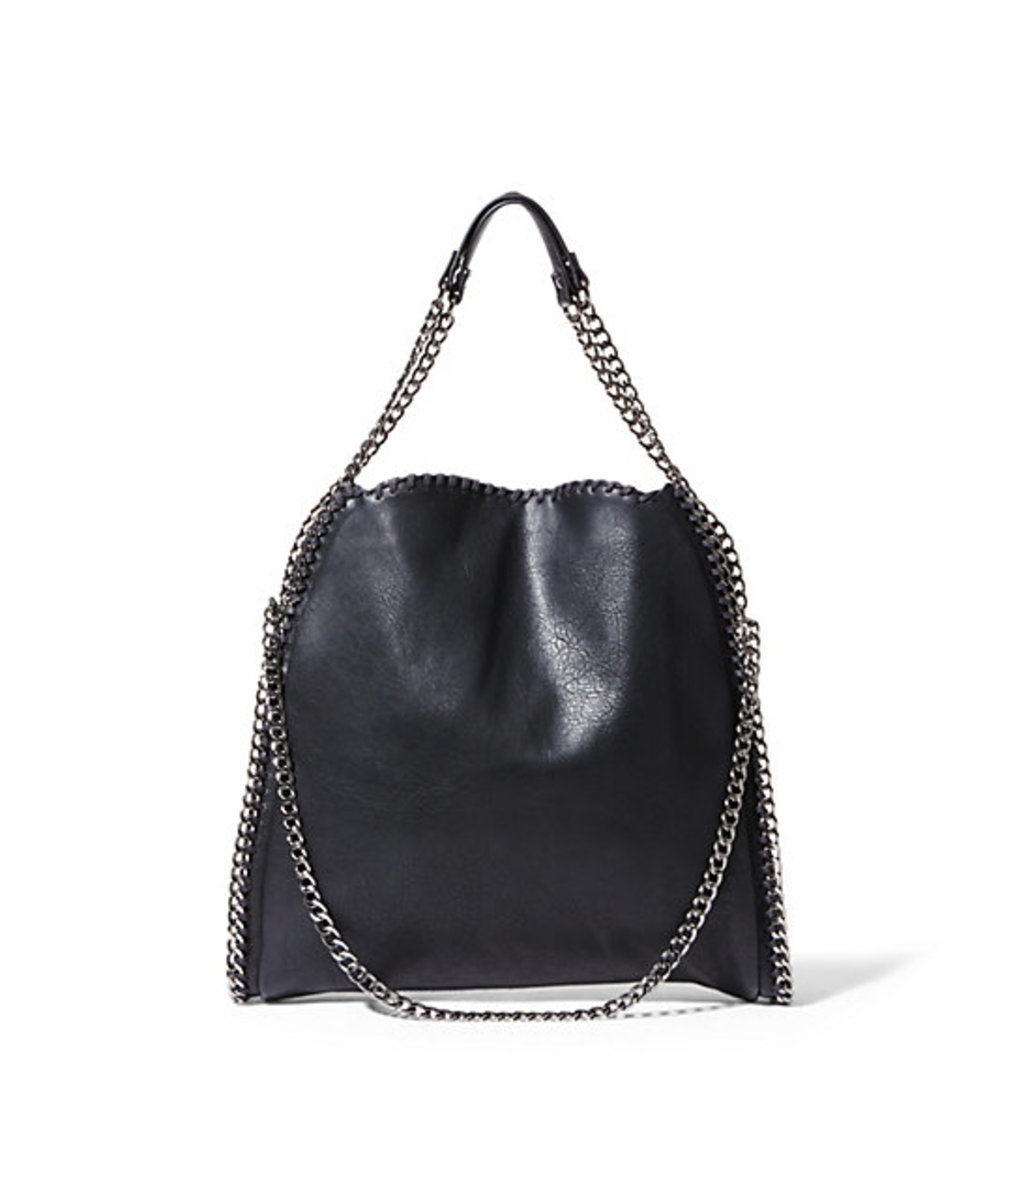 Steve Madden's BTotally bag Photo: Steve Madden website